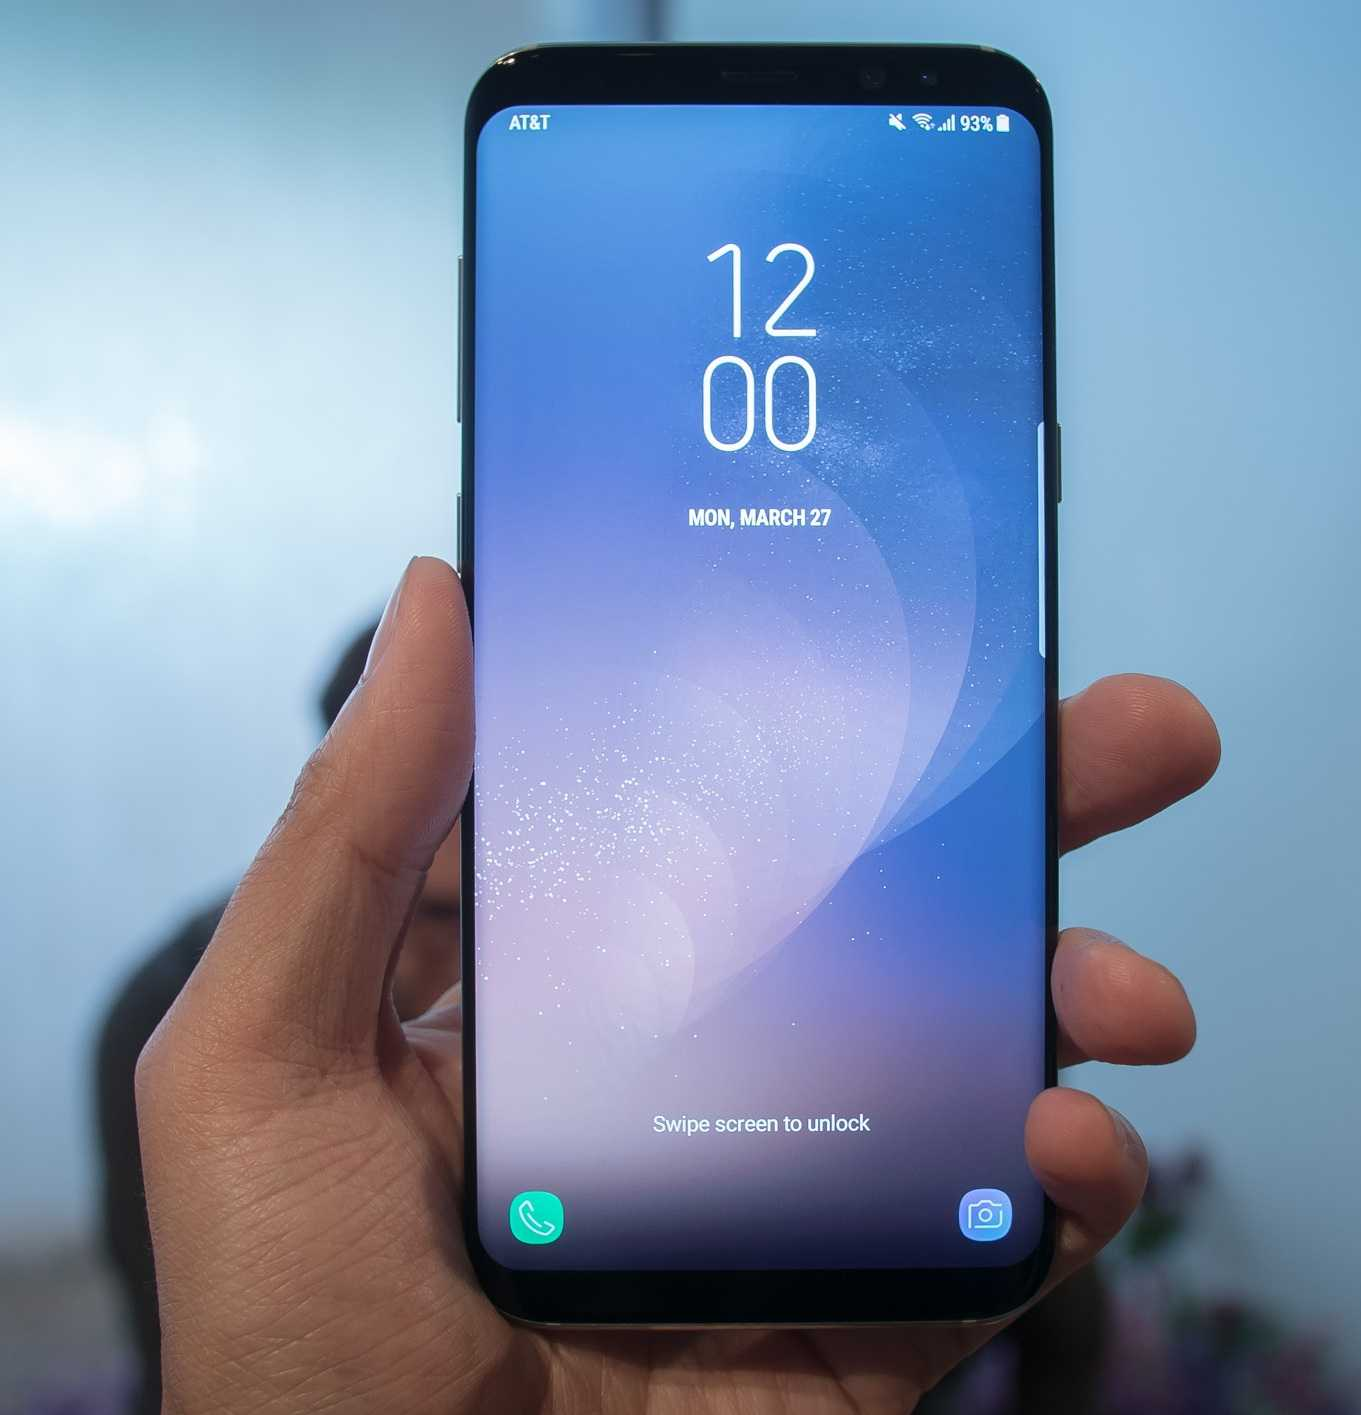 Samsung Galaxy S9 to feature improved iris scanner, says report